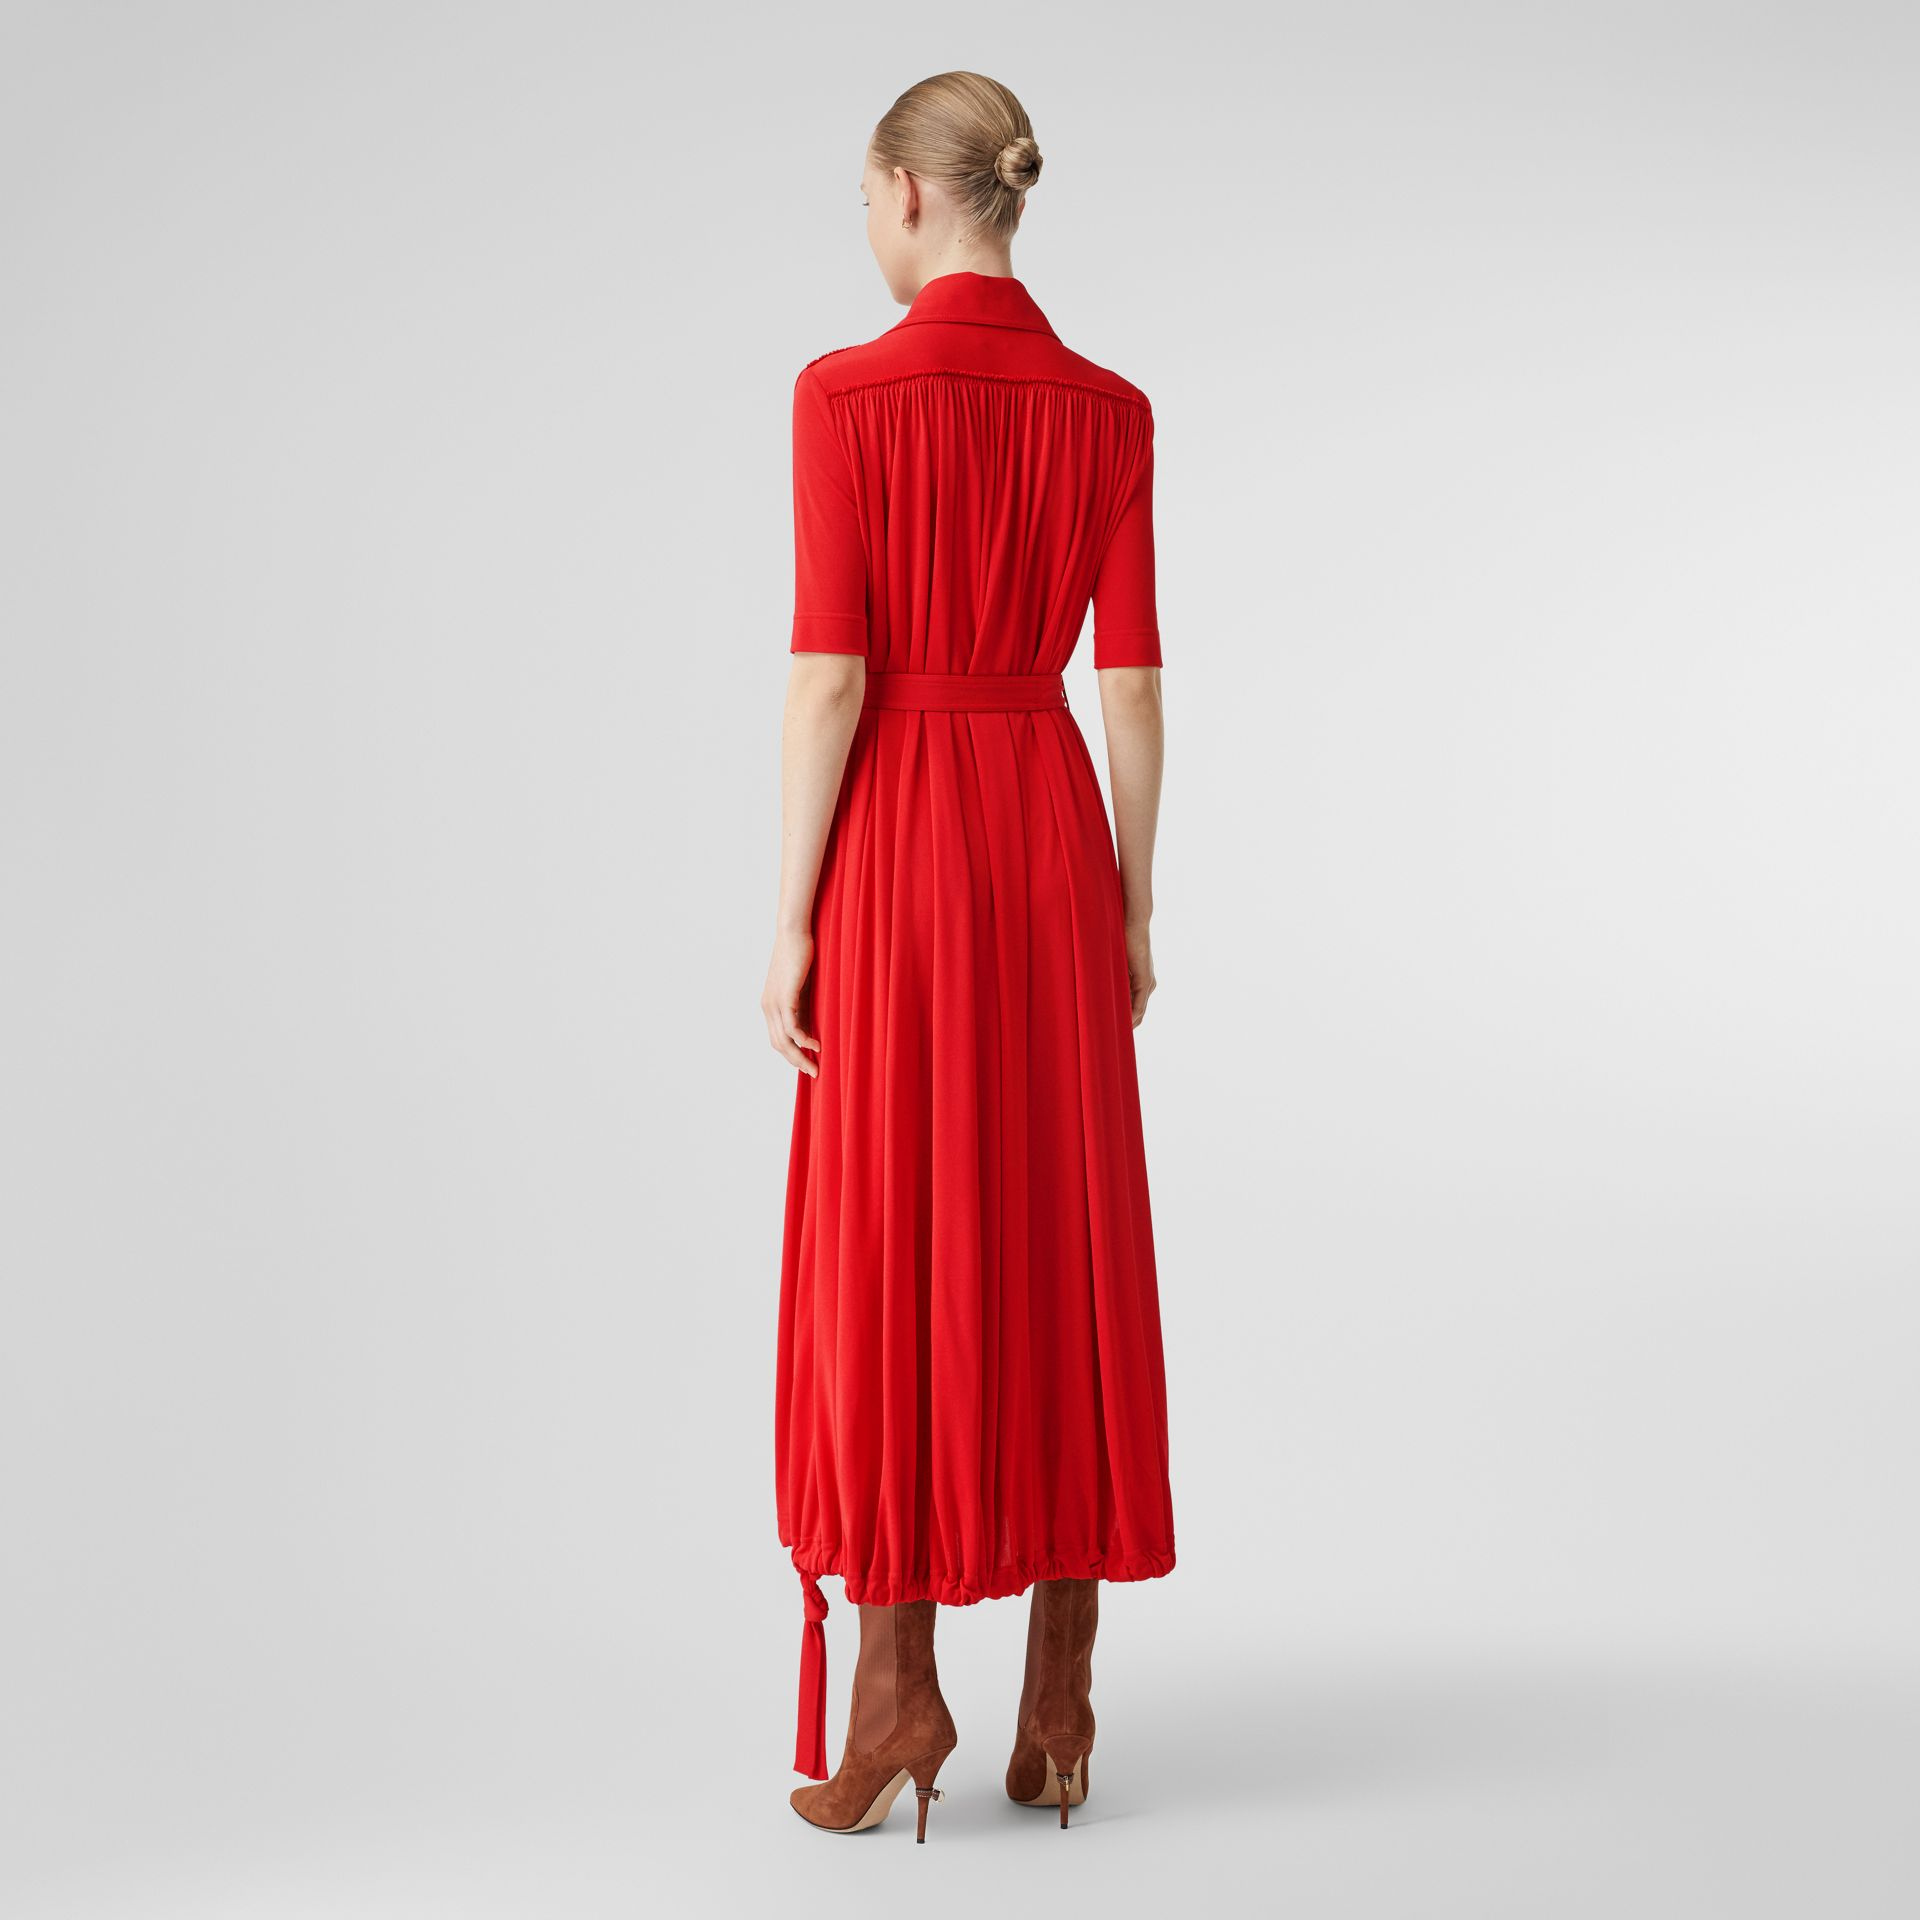 Short-sleeve Gathered Jersey Dress in Bright Red - Women | Burberry United States - gallery image 2